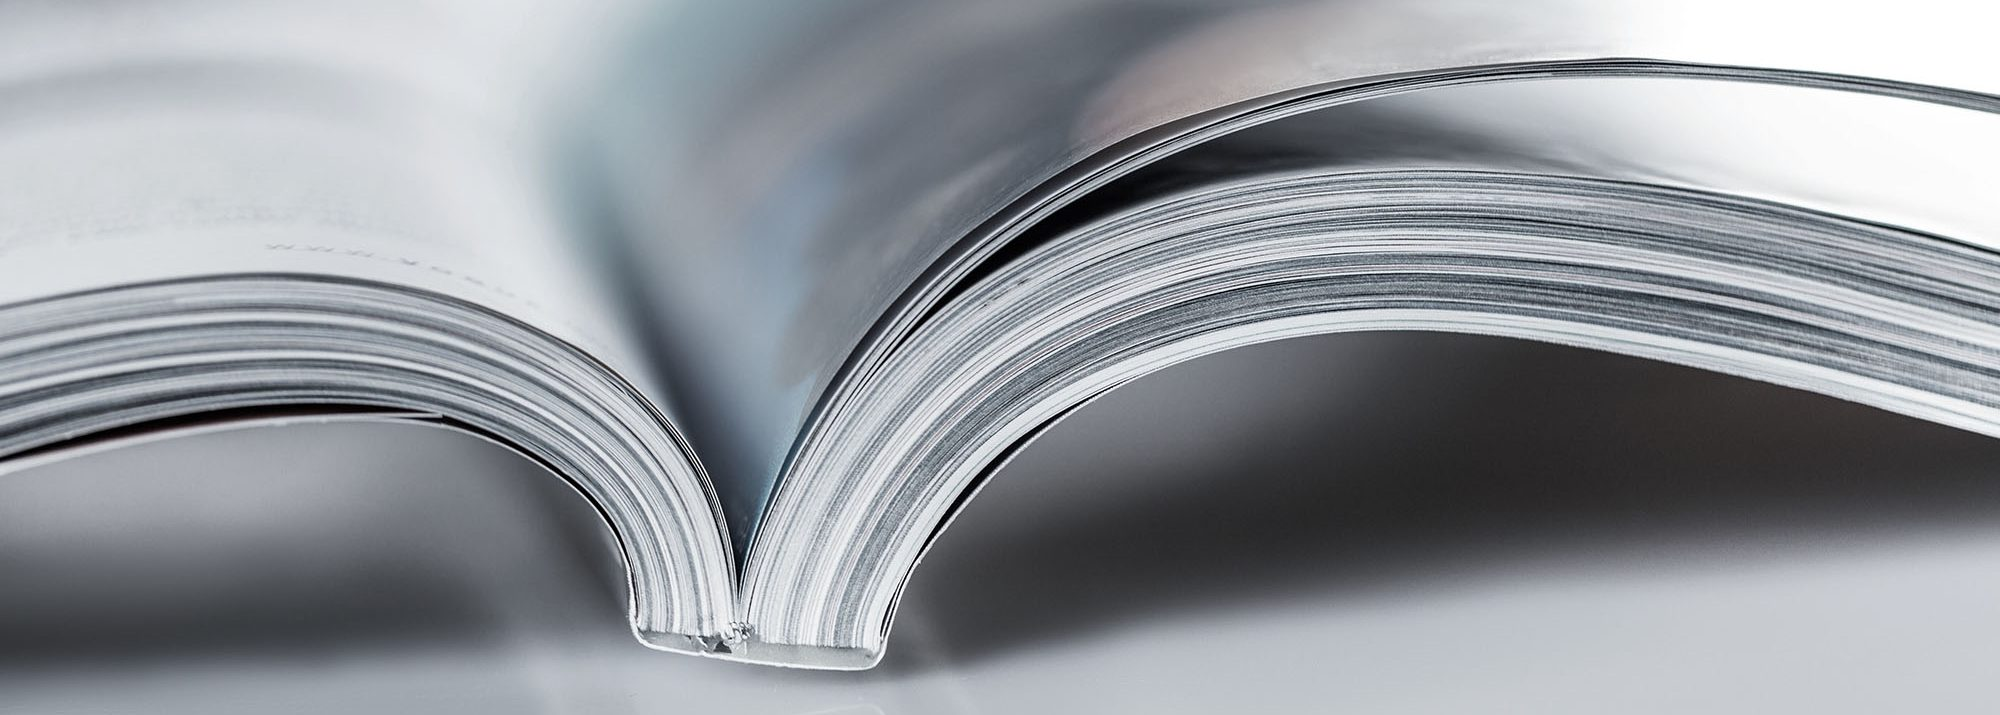 close up of an open paper magazine